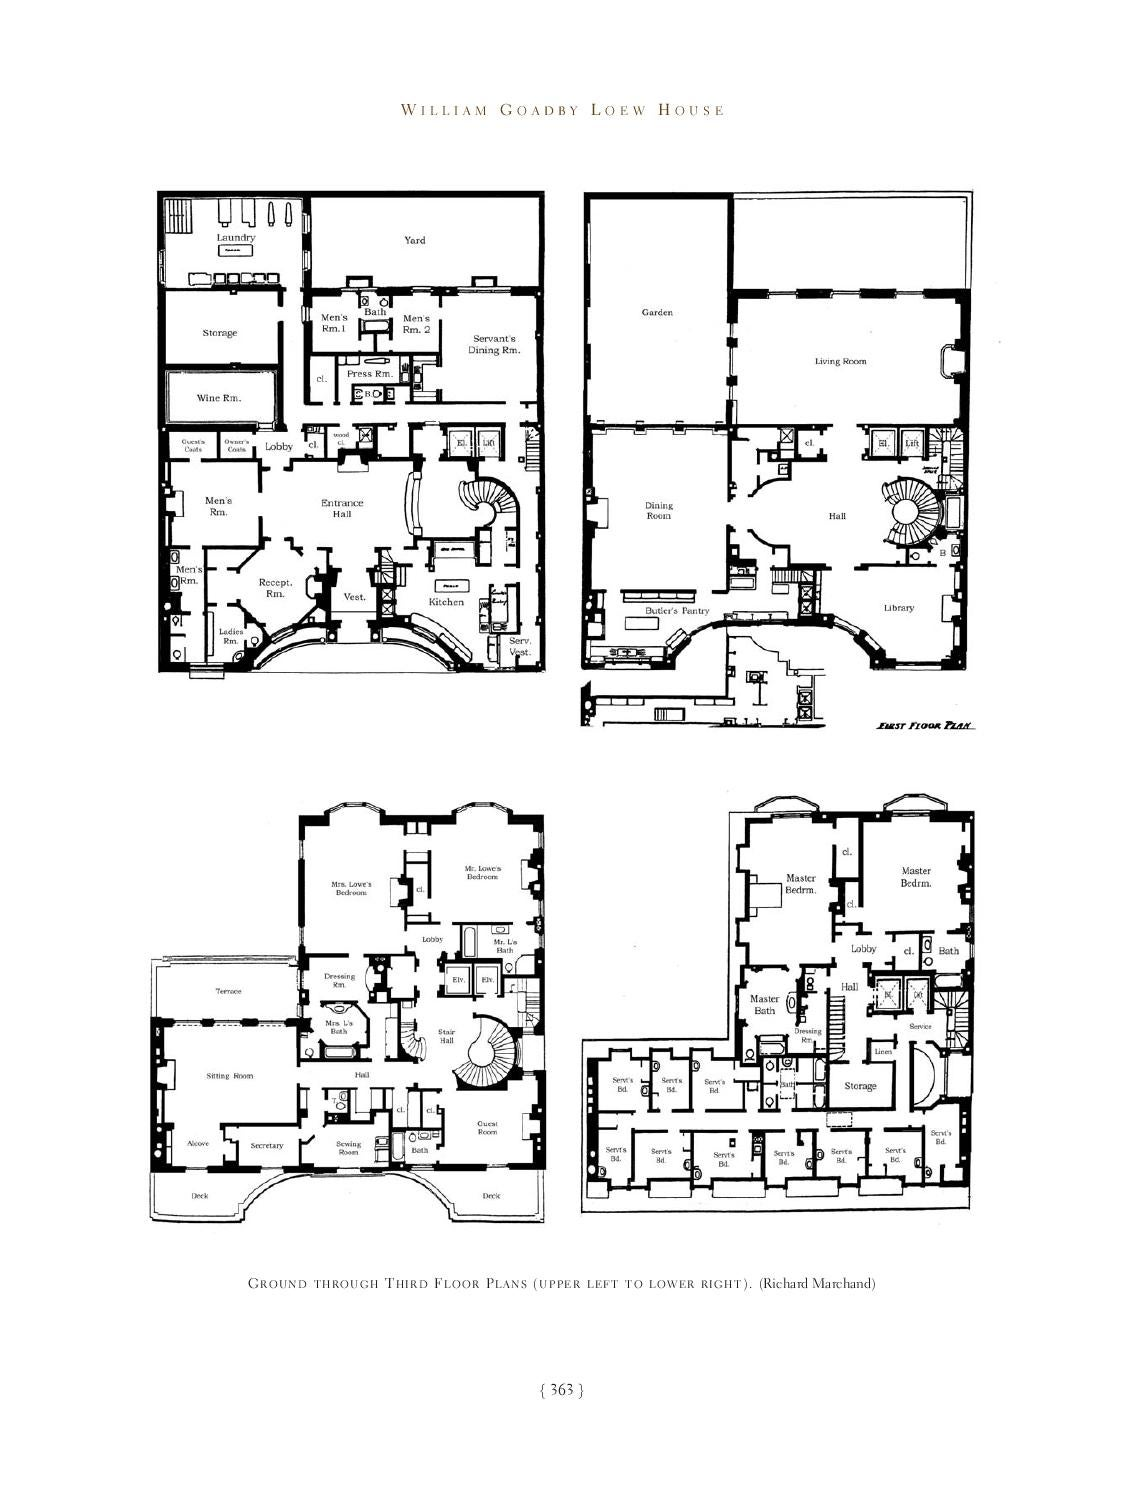 Great houses of new york by acanthus press llc issuu for New york house plans